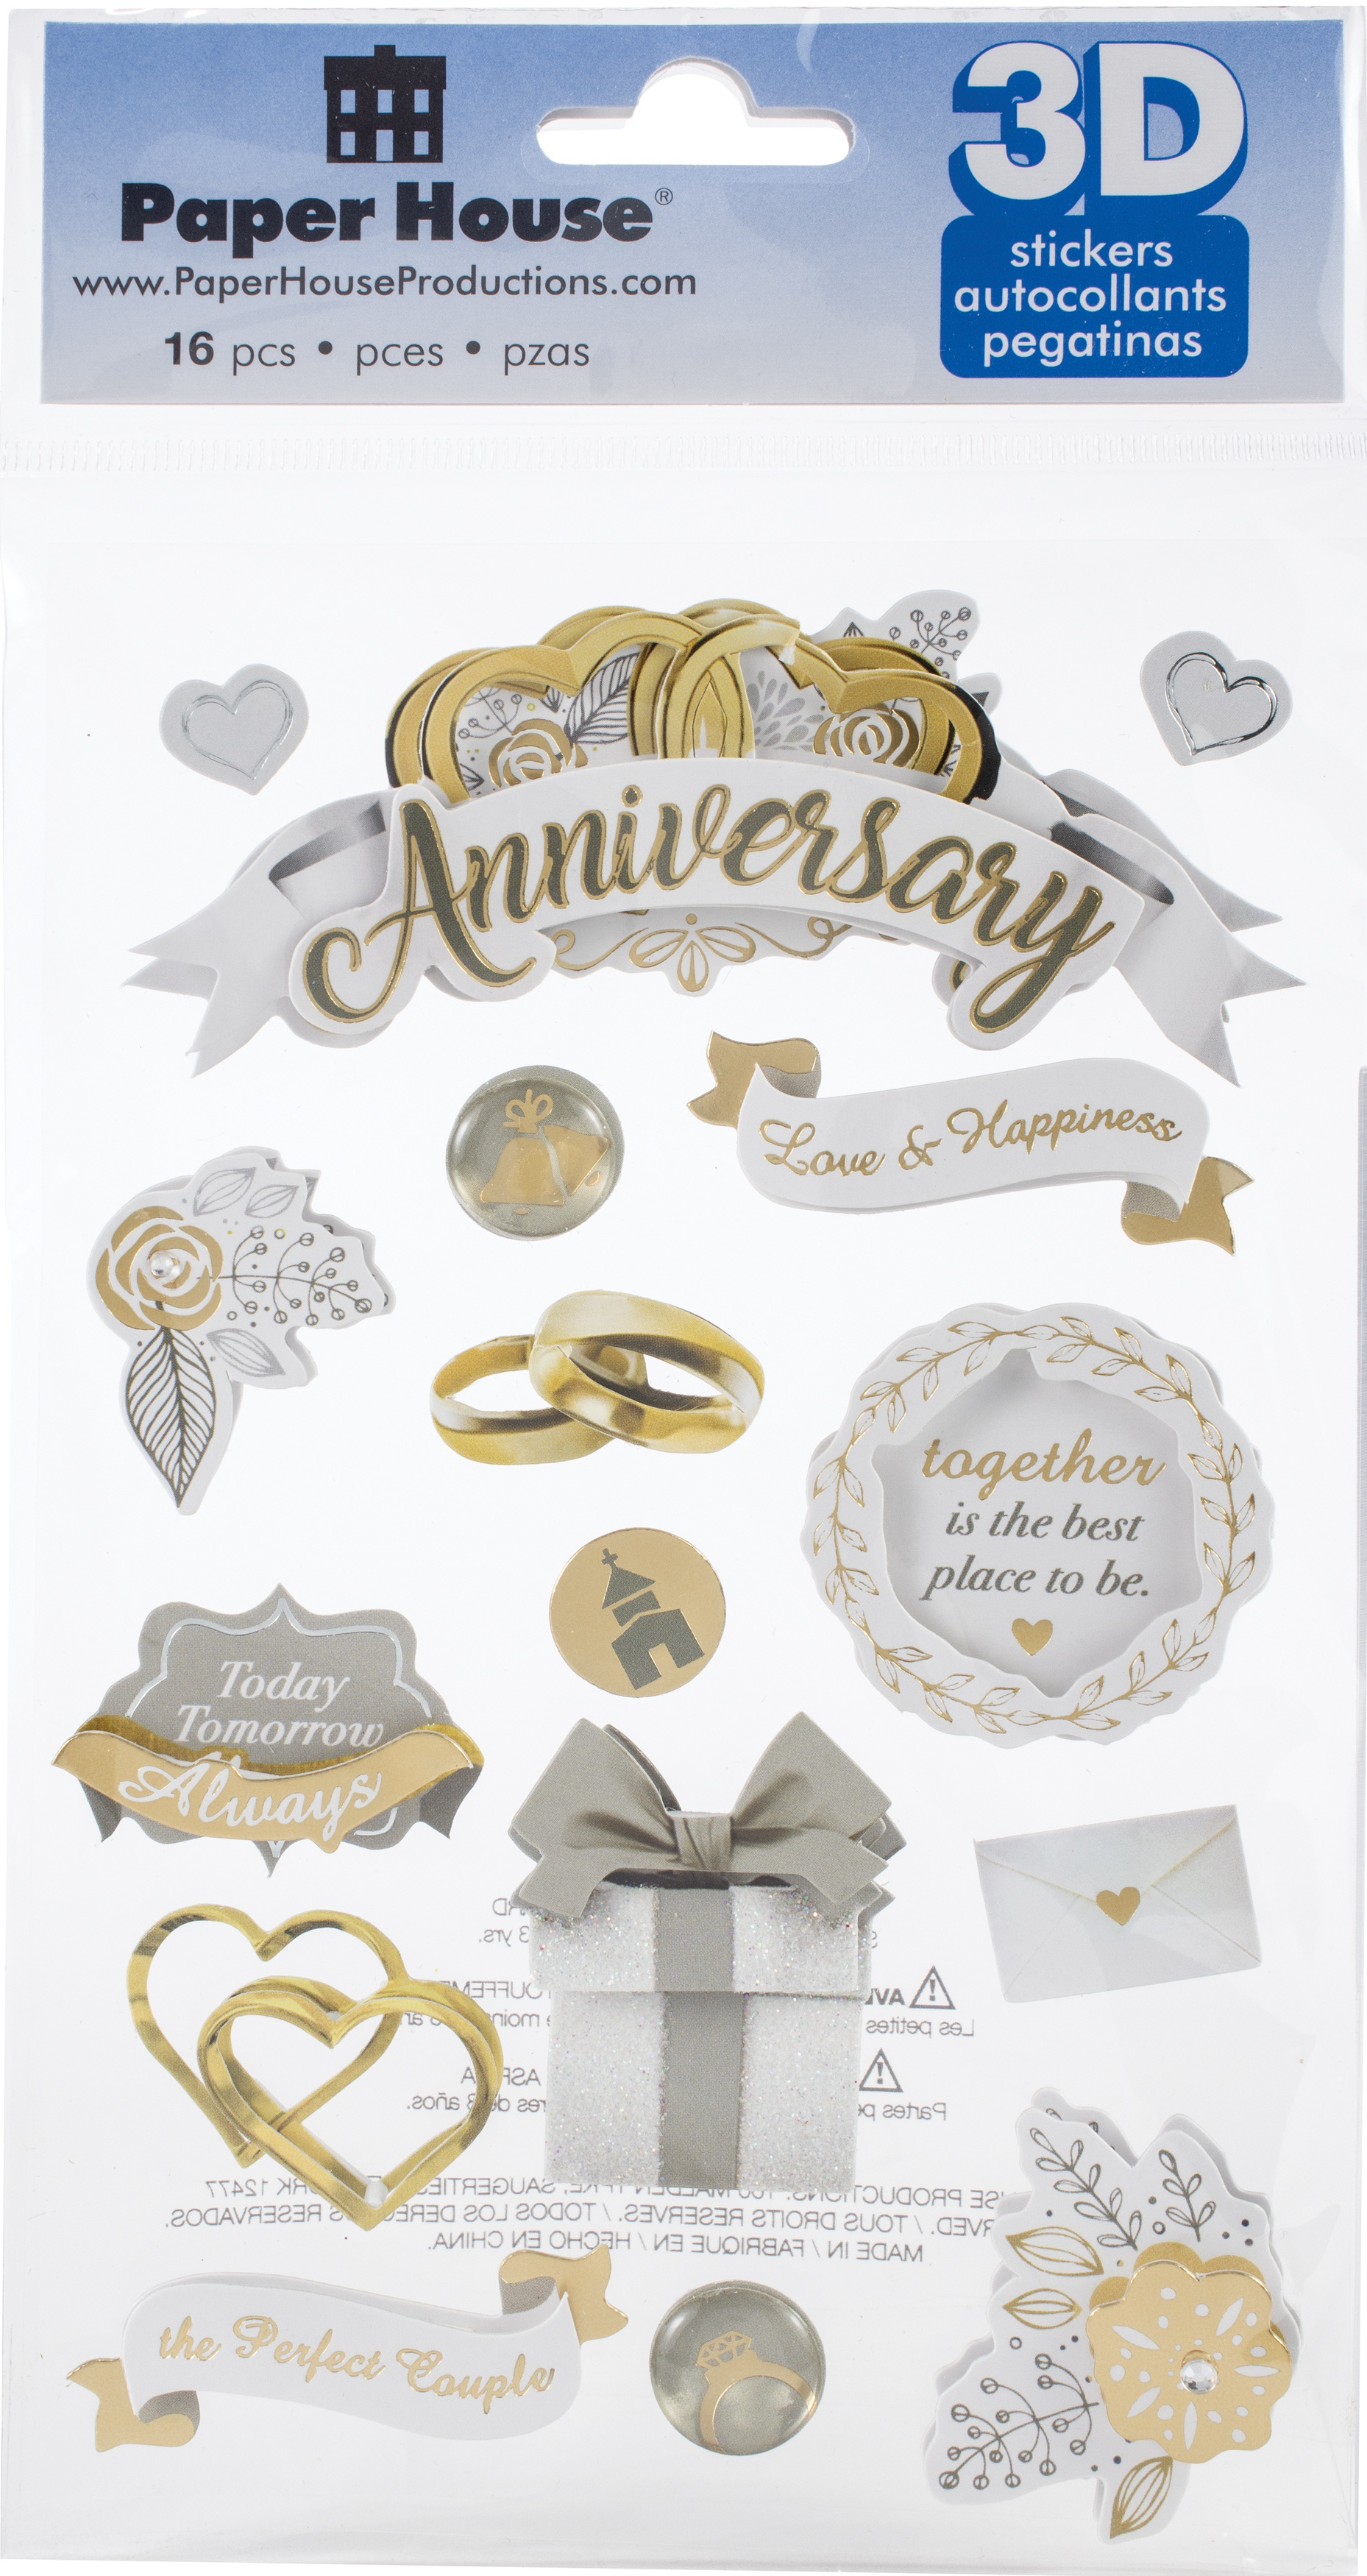 Paper House 3D Stickers-Our Anniversary